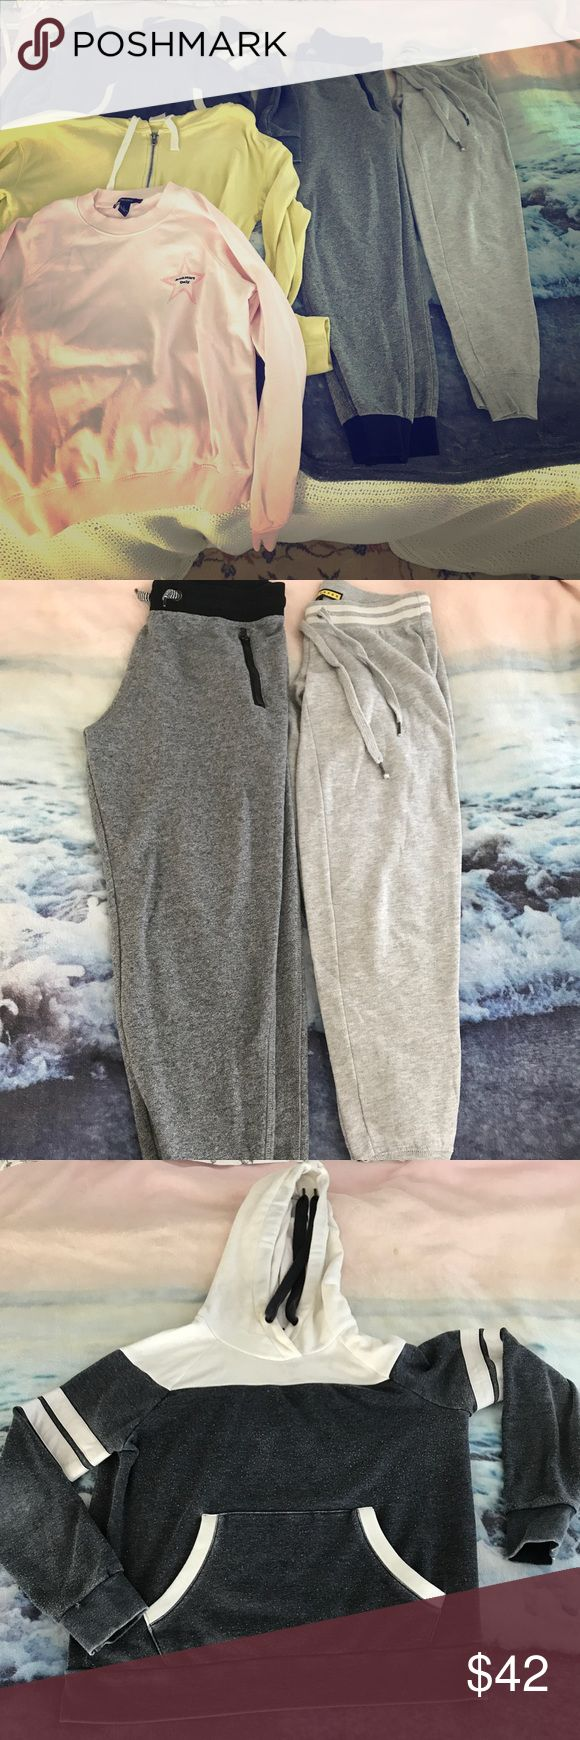 3 Hoodies and 2 joggers ! Dark grey joggers- H&M small ; Light grey joggers- Prince &a Fox xsmall; pink hoodie- Forever 21 small; yellow zip up hoodie- Abercrombie & Fitch Medium; Blue and white Hoodie- Forever 21 small Forever 21 Other